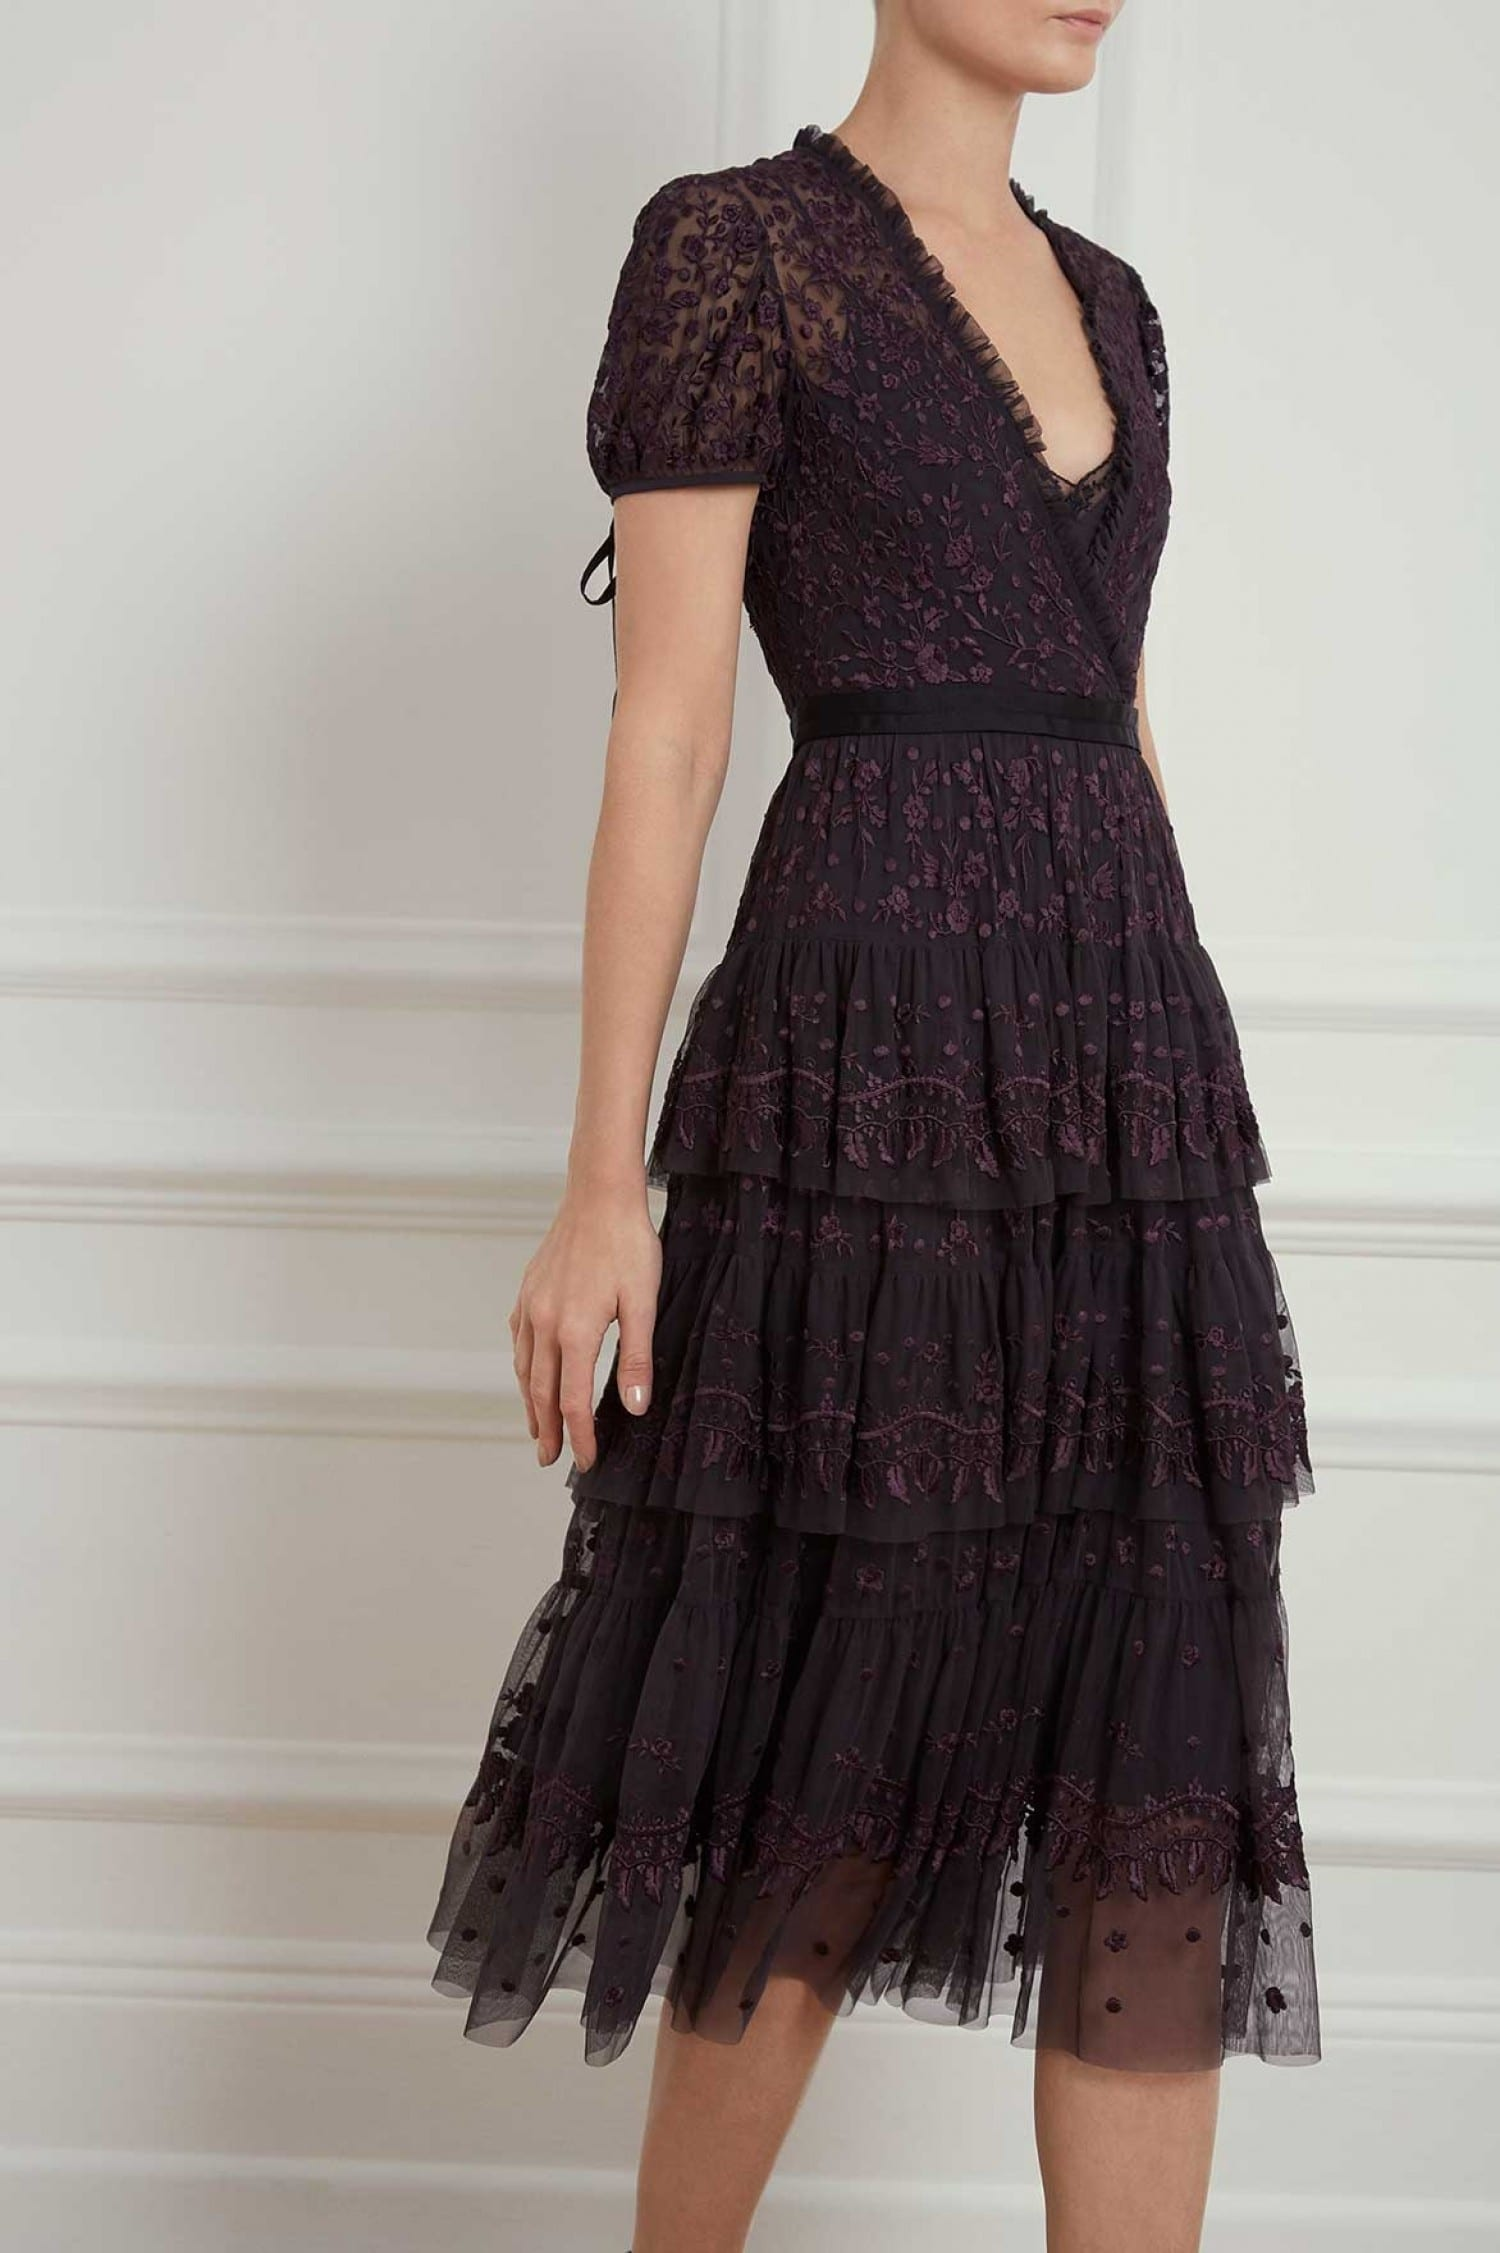 NEEDLE AND THREAD Layered Lace Black Dress